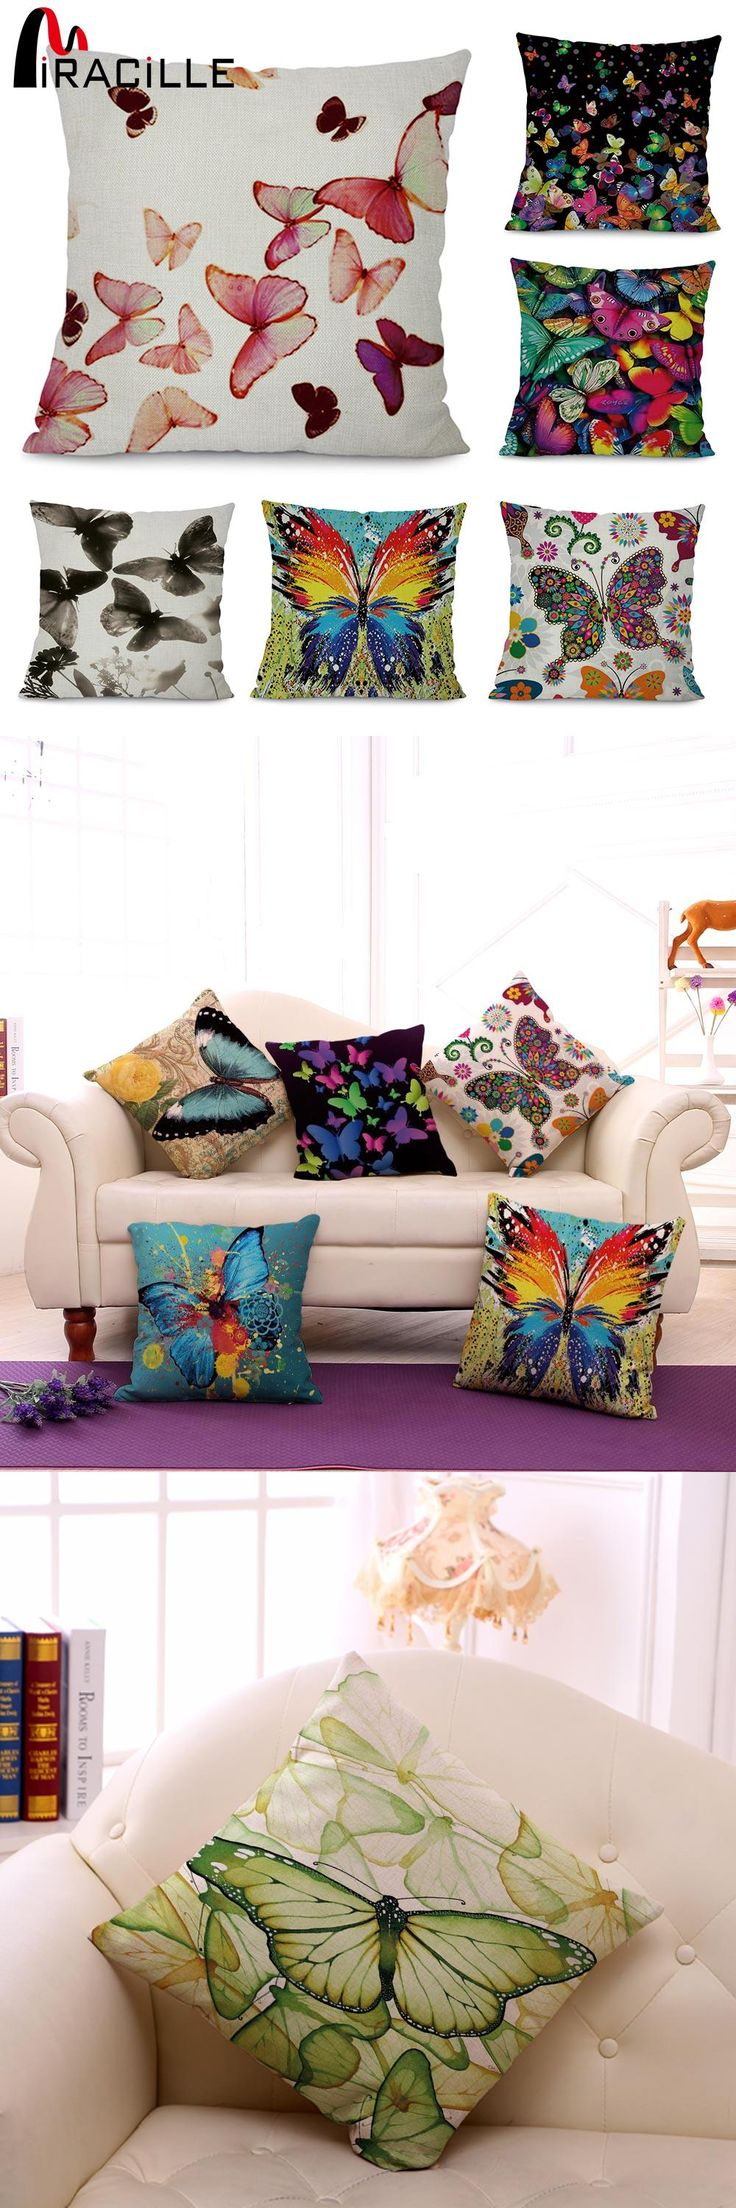 [Visit to Buy] Miracille Colorful Butterfly Art Printed Cushion Cover Modern Home Garden Chair Decorative Pillowcase 45x45cm Living Room Decor #Advertisement